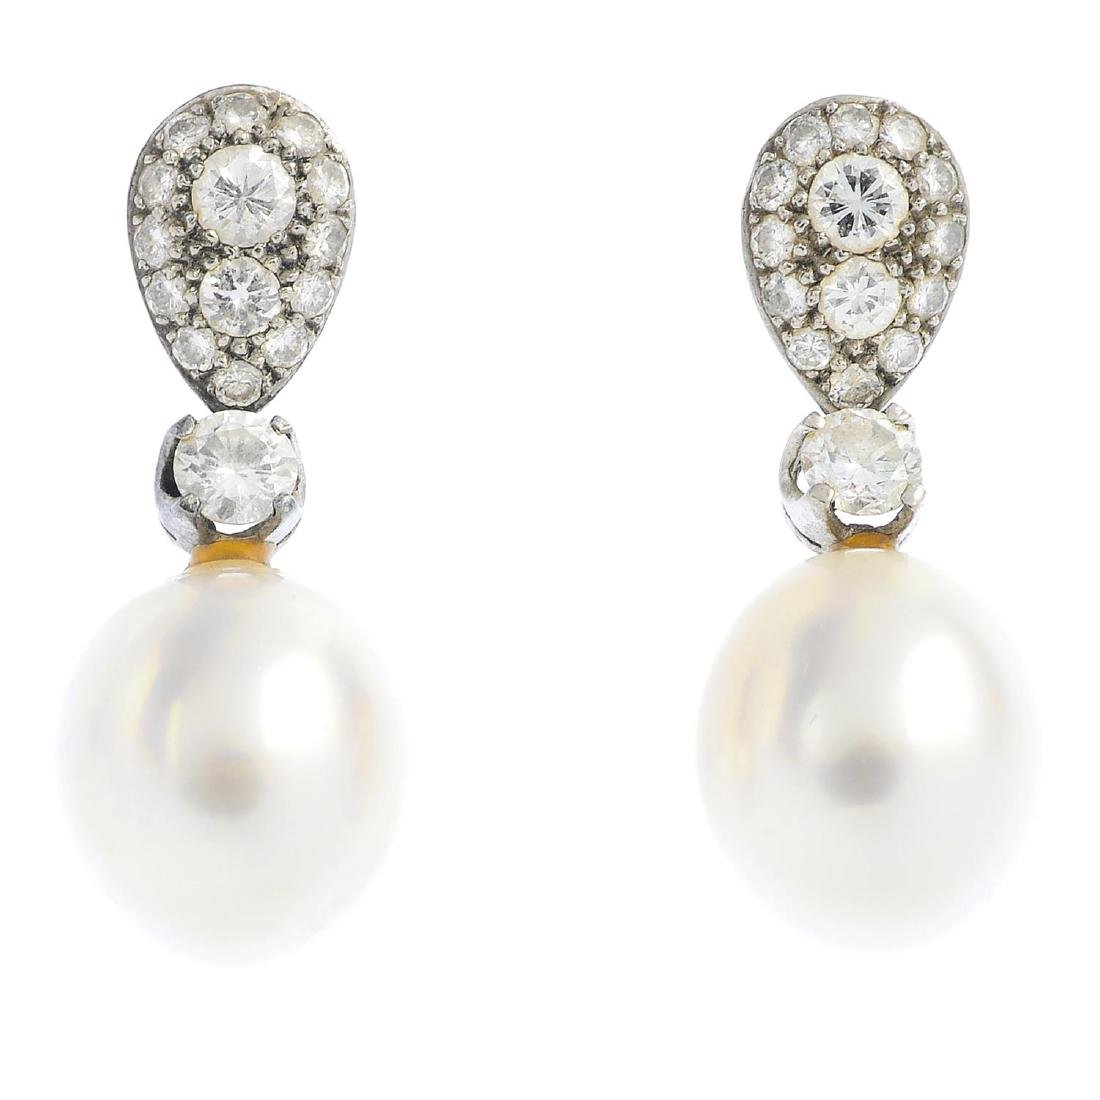 (209112) A pair of cultured pearl and diamond earrings.